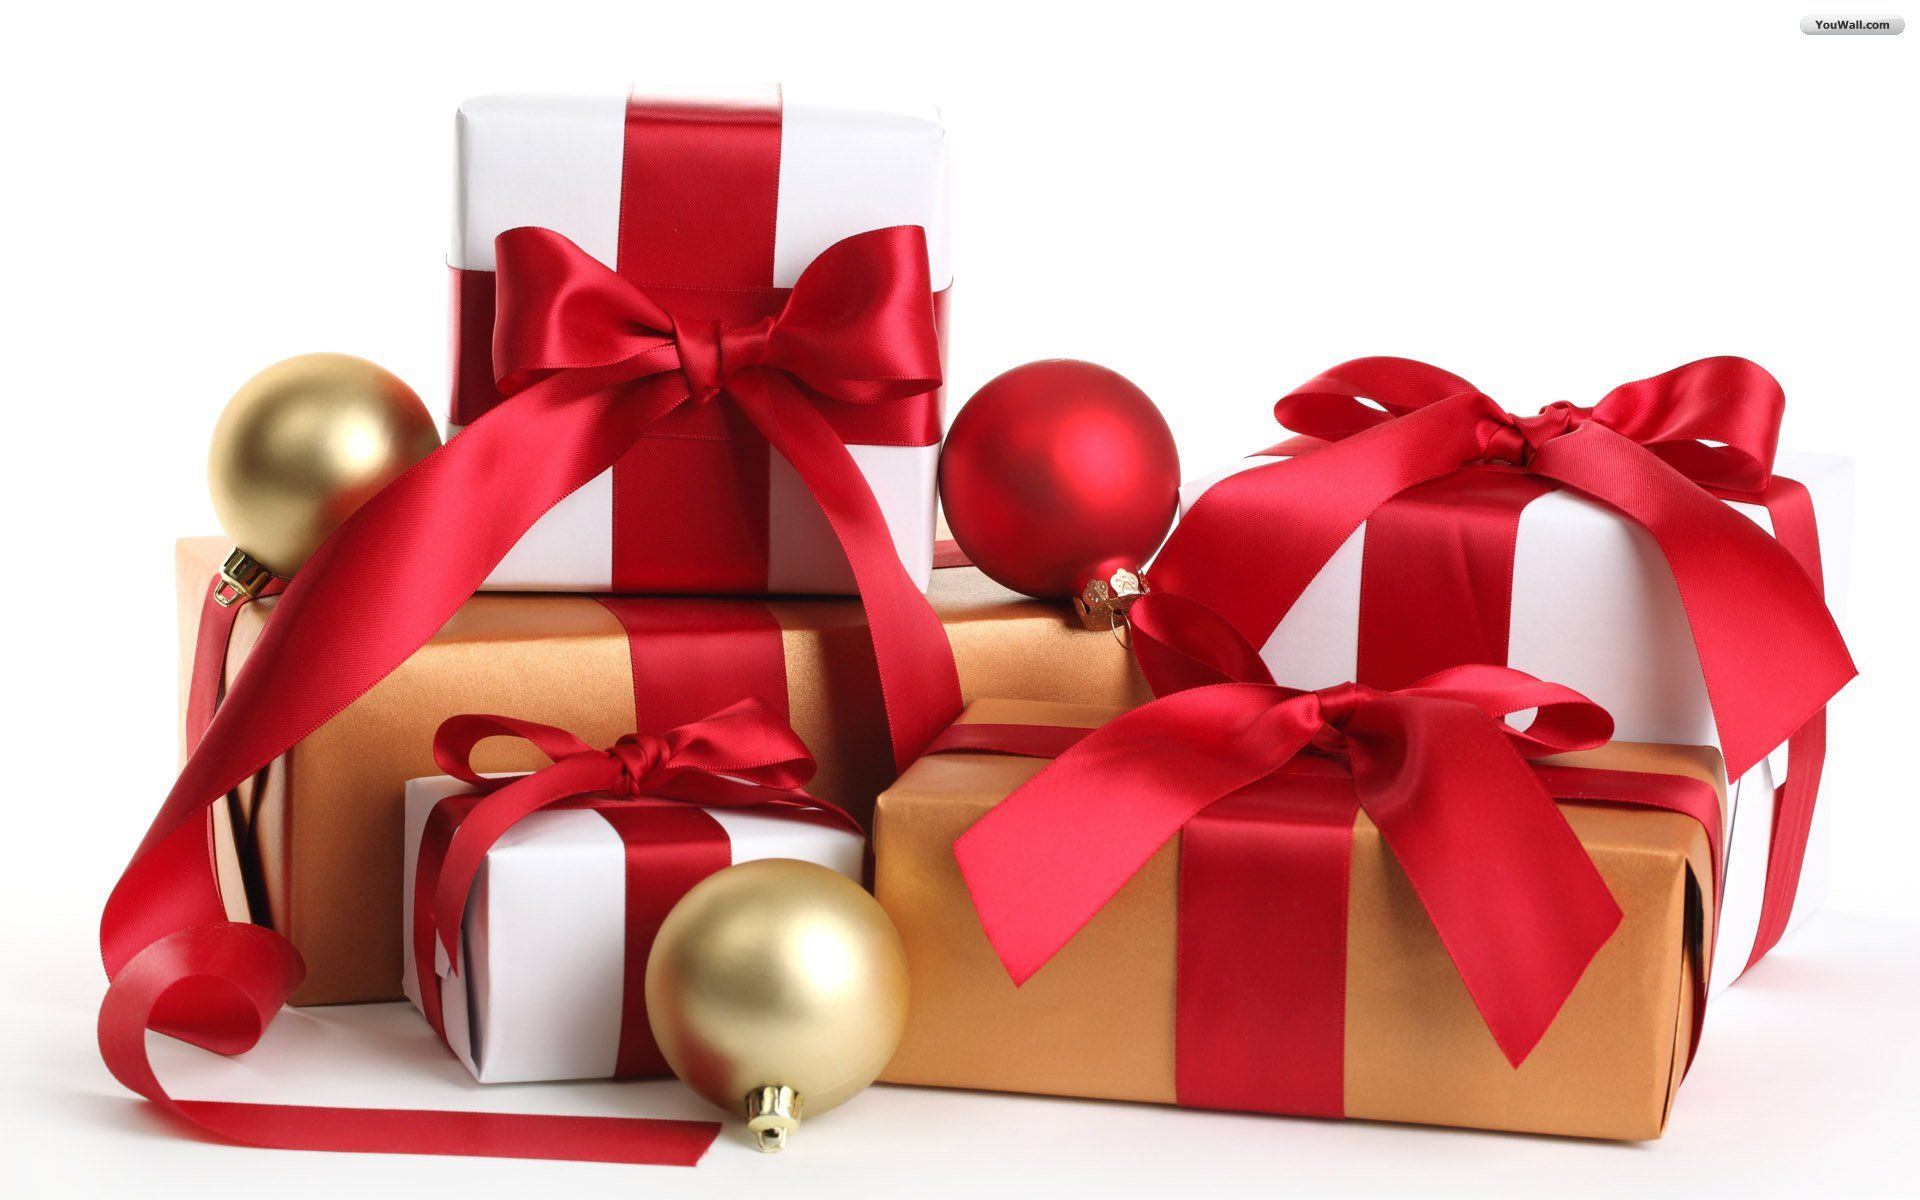 Swiateczne Chciejstwa Wish List Christmas Gifts For Colleagues Happy Boxing Day Christmas Gift Baskets